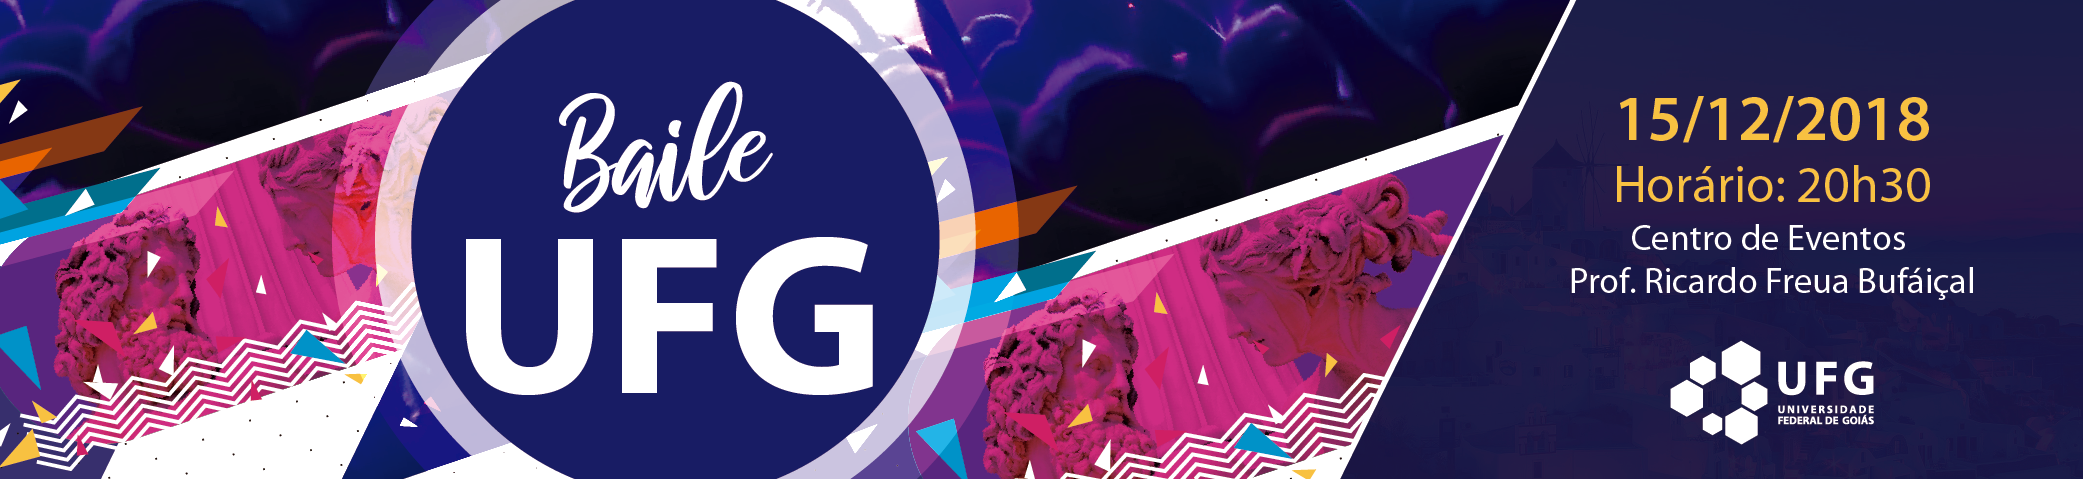 baile_ufg_2018_banner-01.png